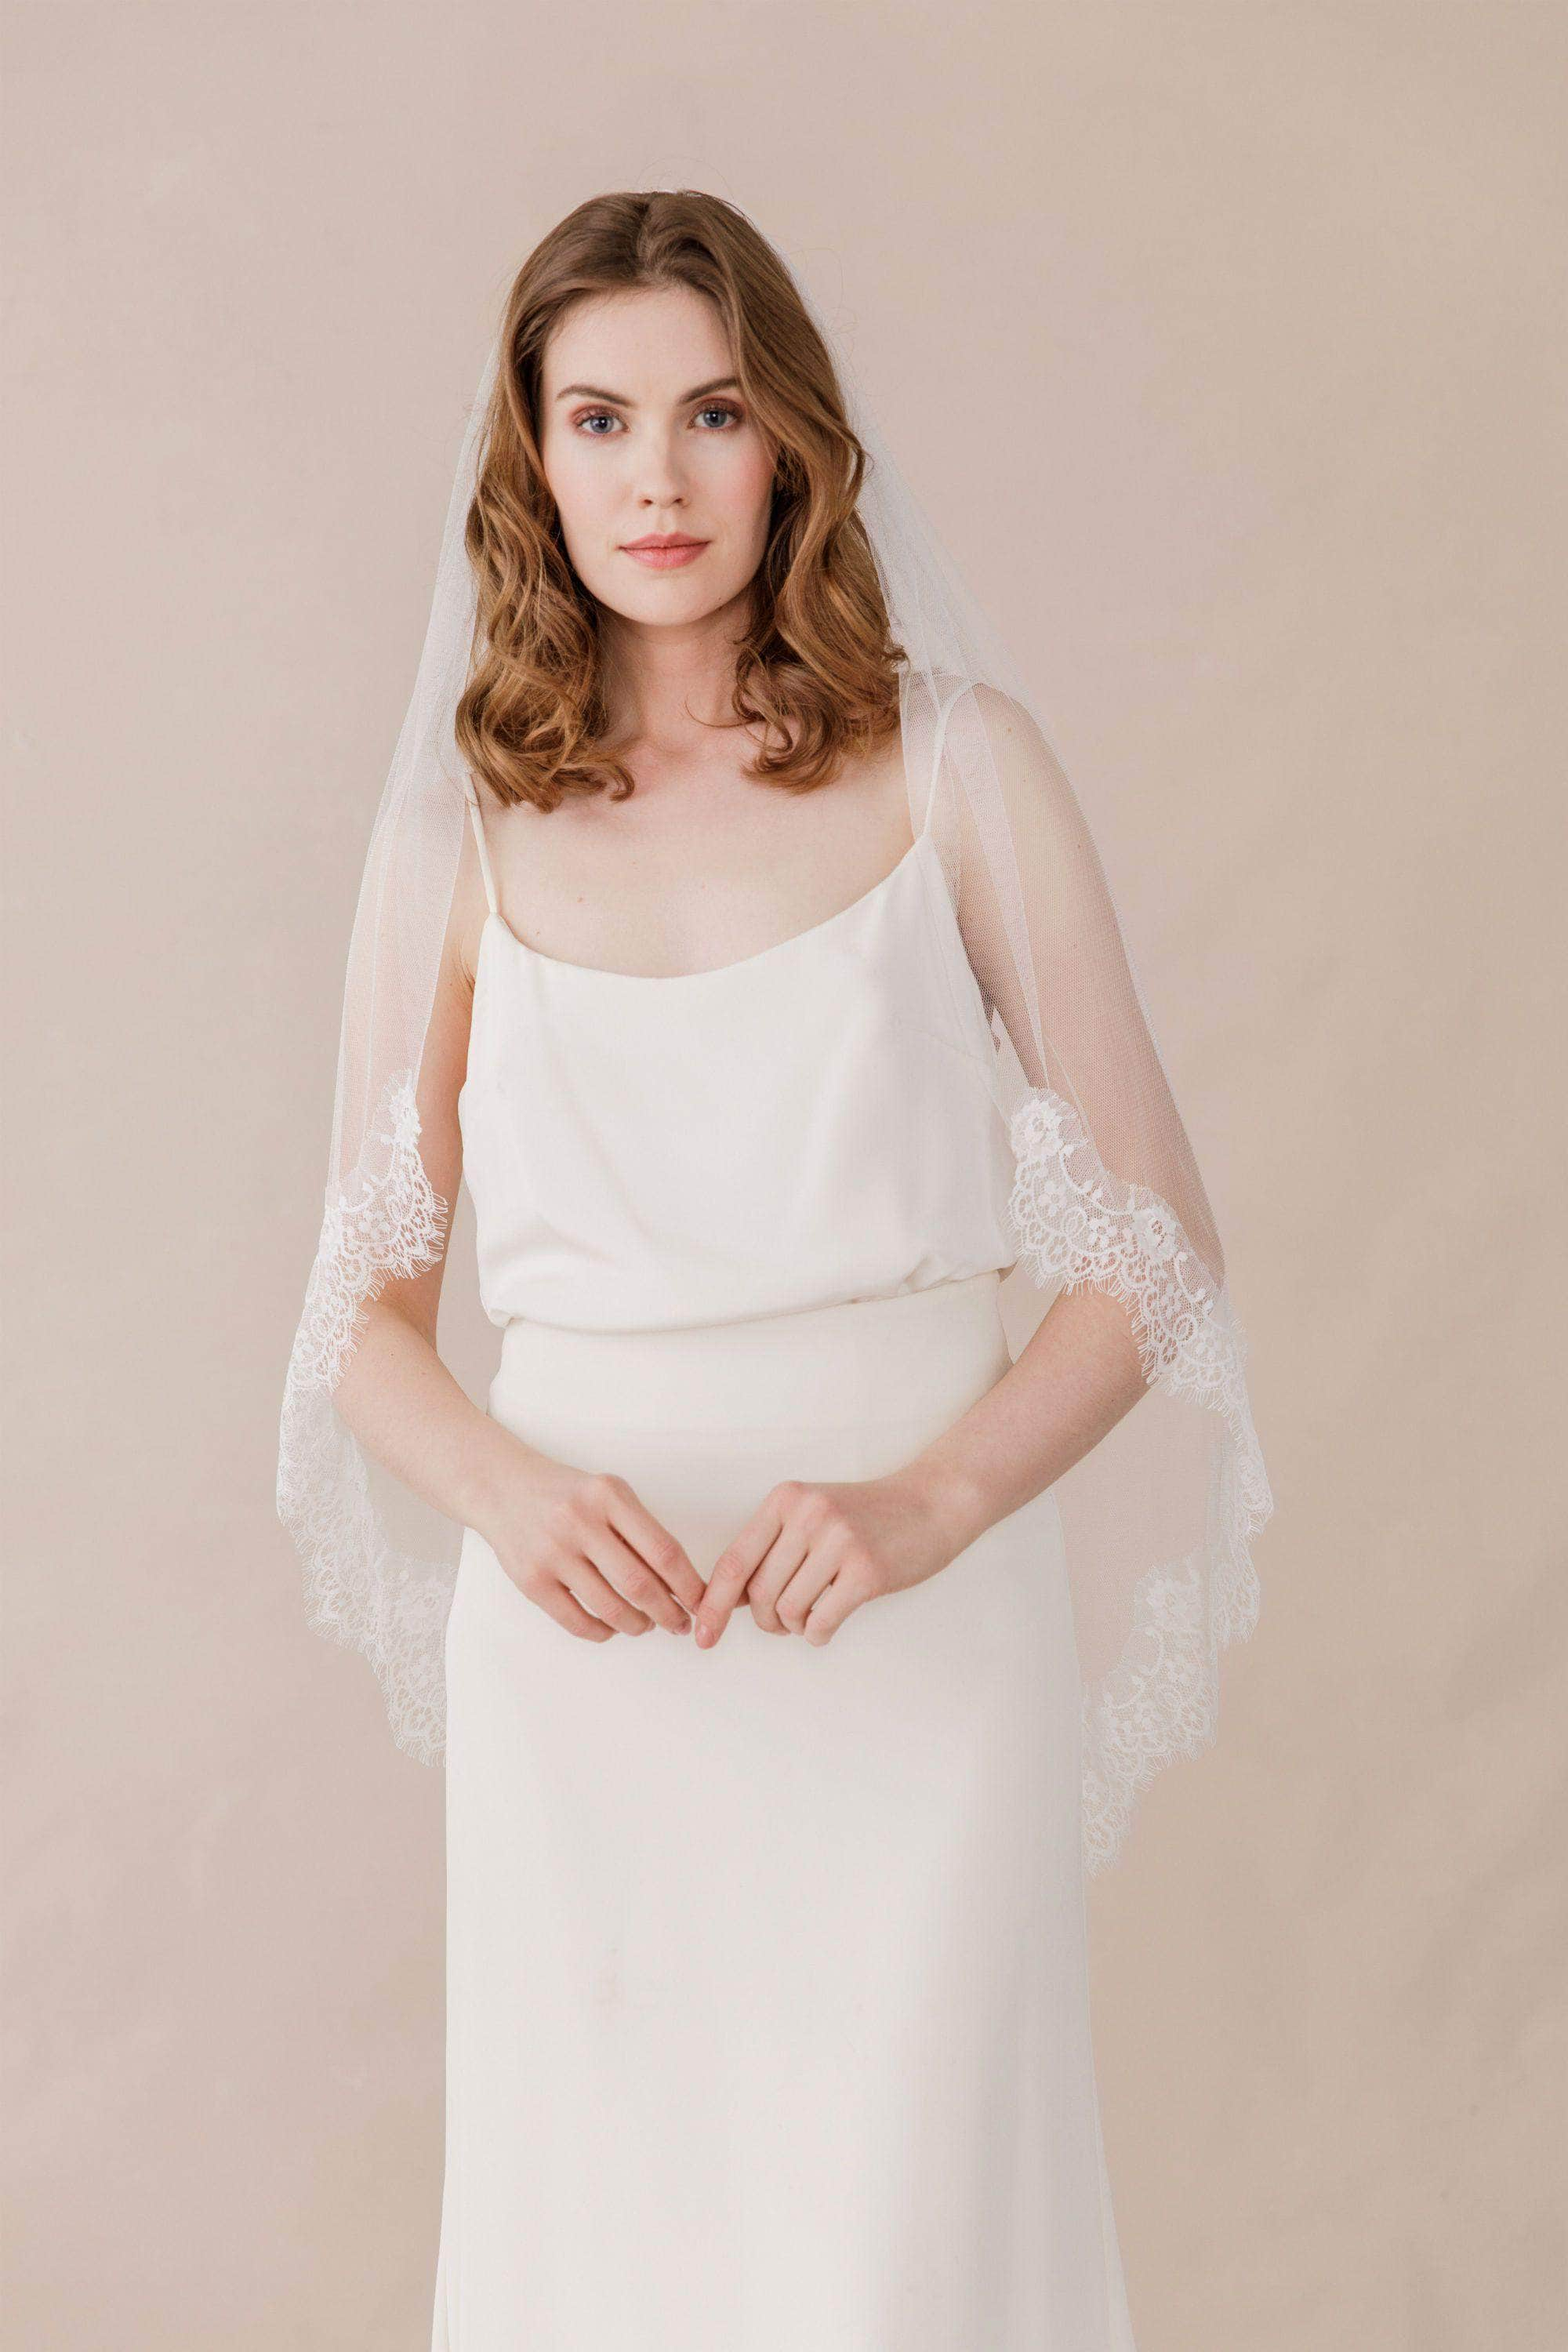 Wedding Veil Semi edged silk style wedding veil with eyelash lace - 'Kayla'